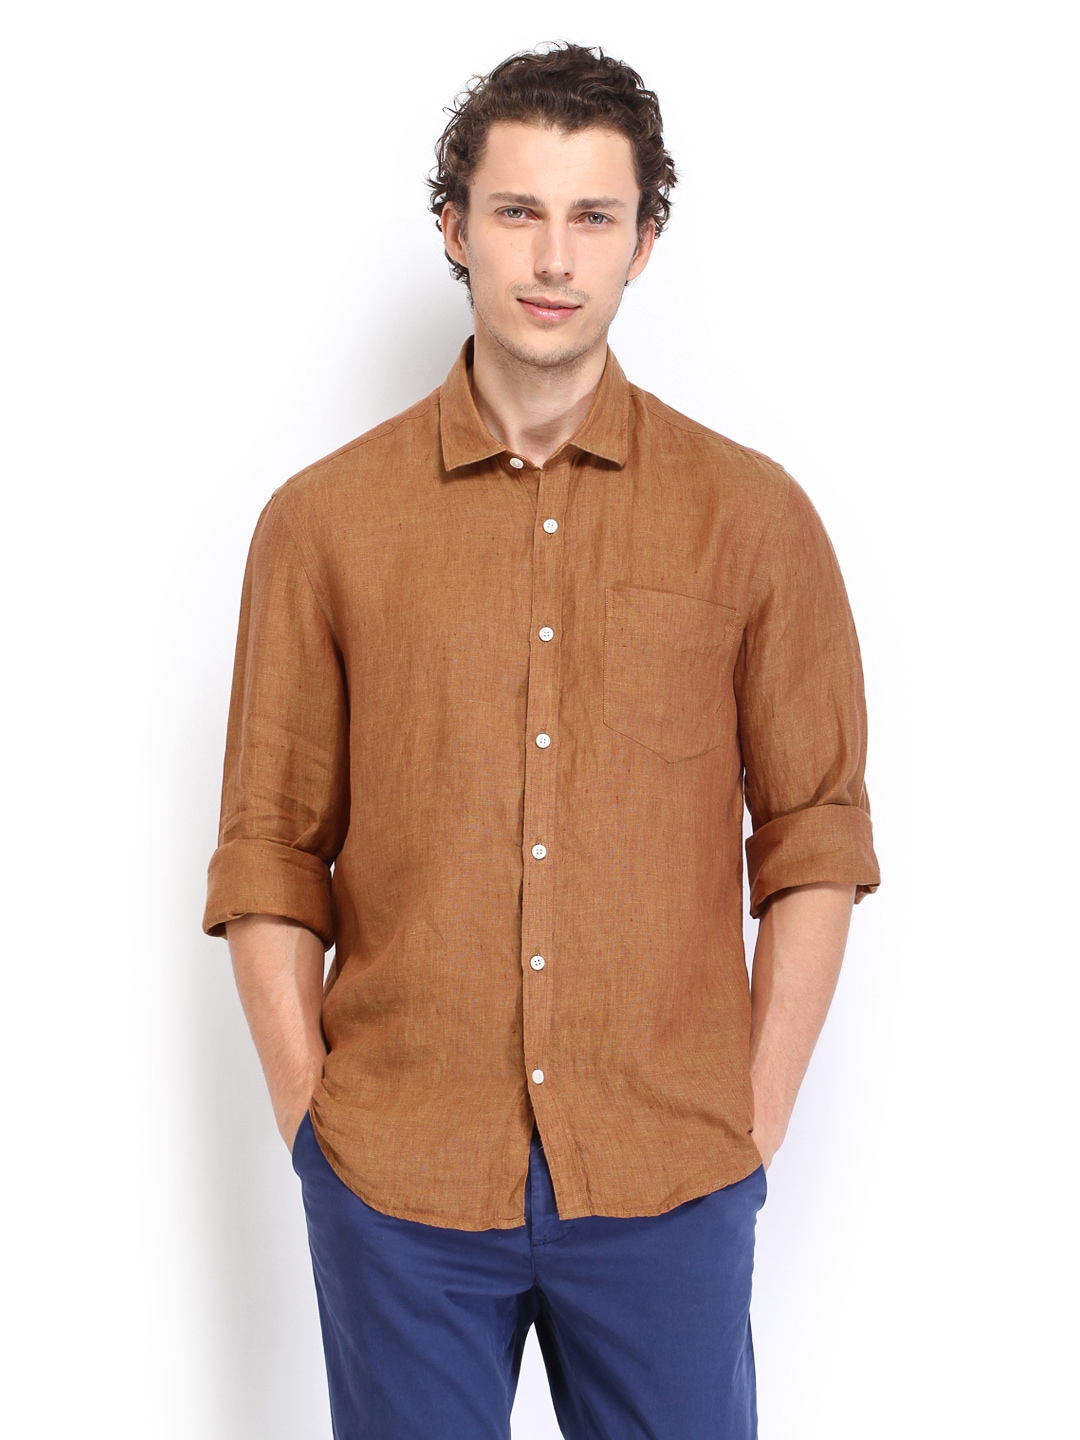 Mustard True Linen Lombard Men Mustard Brown Slim Fit Linen Casual Shirt (Multicolor)